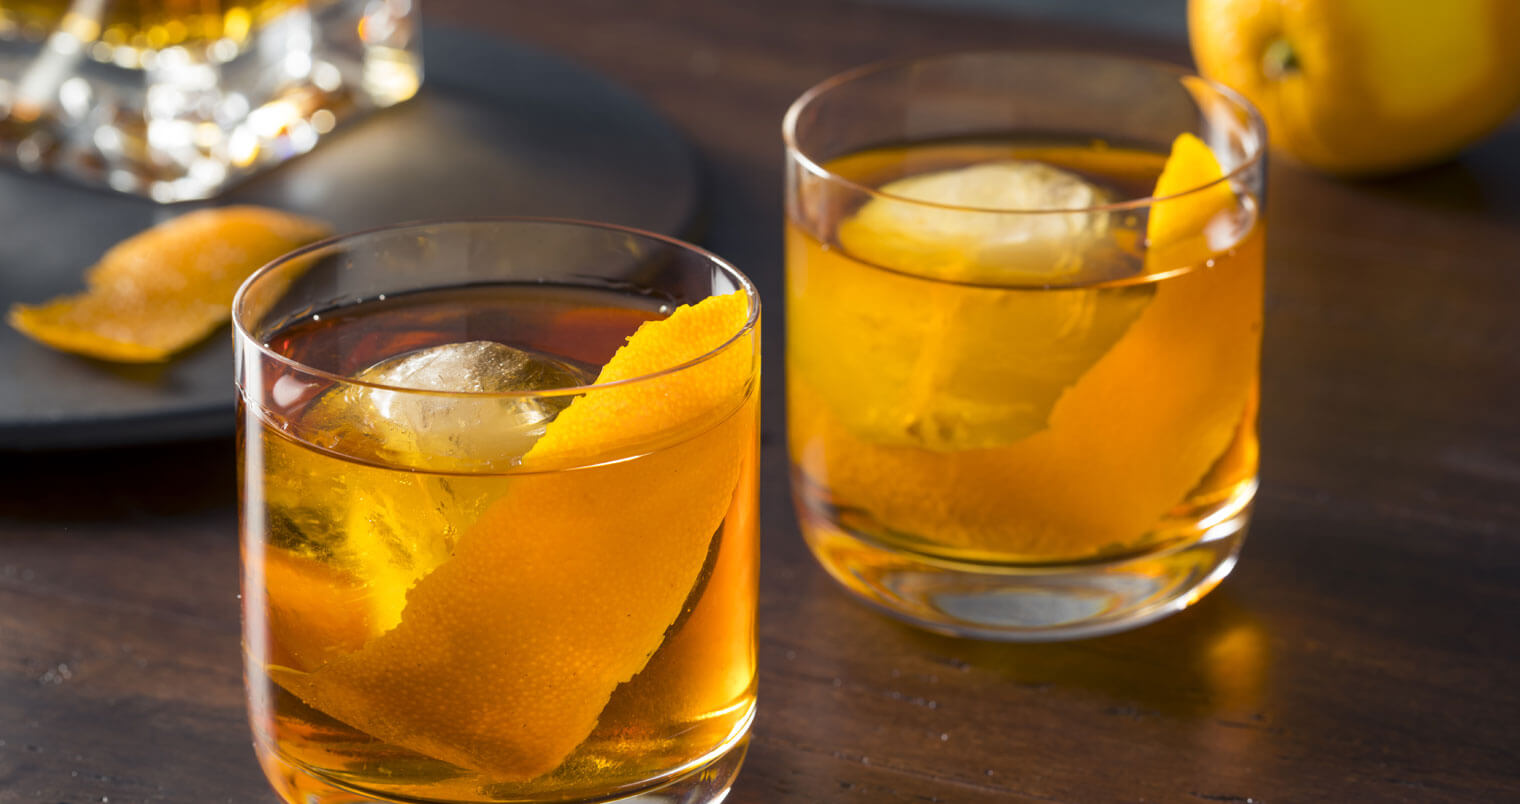 Rye Old Fashioned, cocktails with garnish, featured image